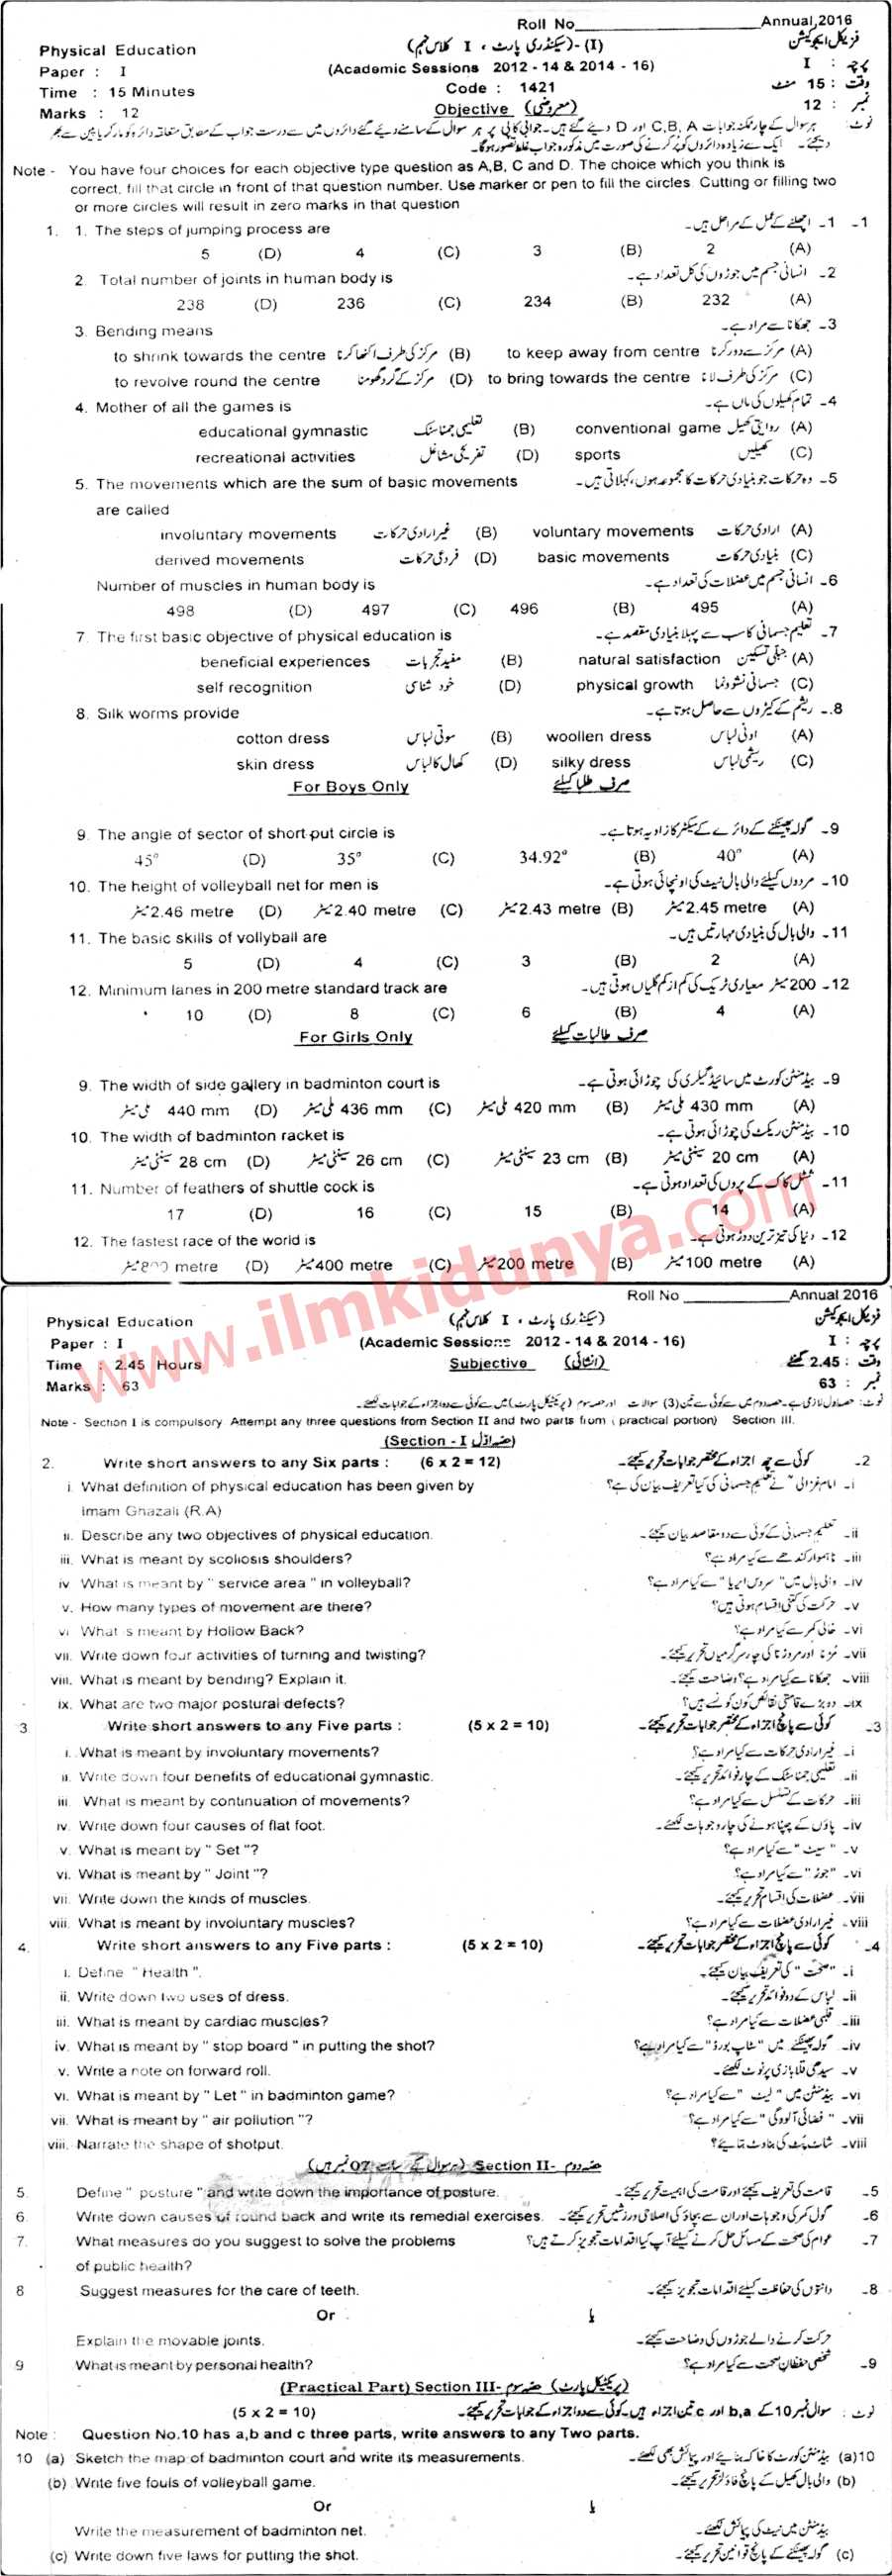 Past papers 2016 sahiwal board 9th class physical education malvernweather Image collections